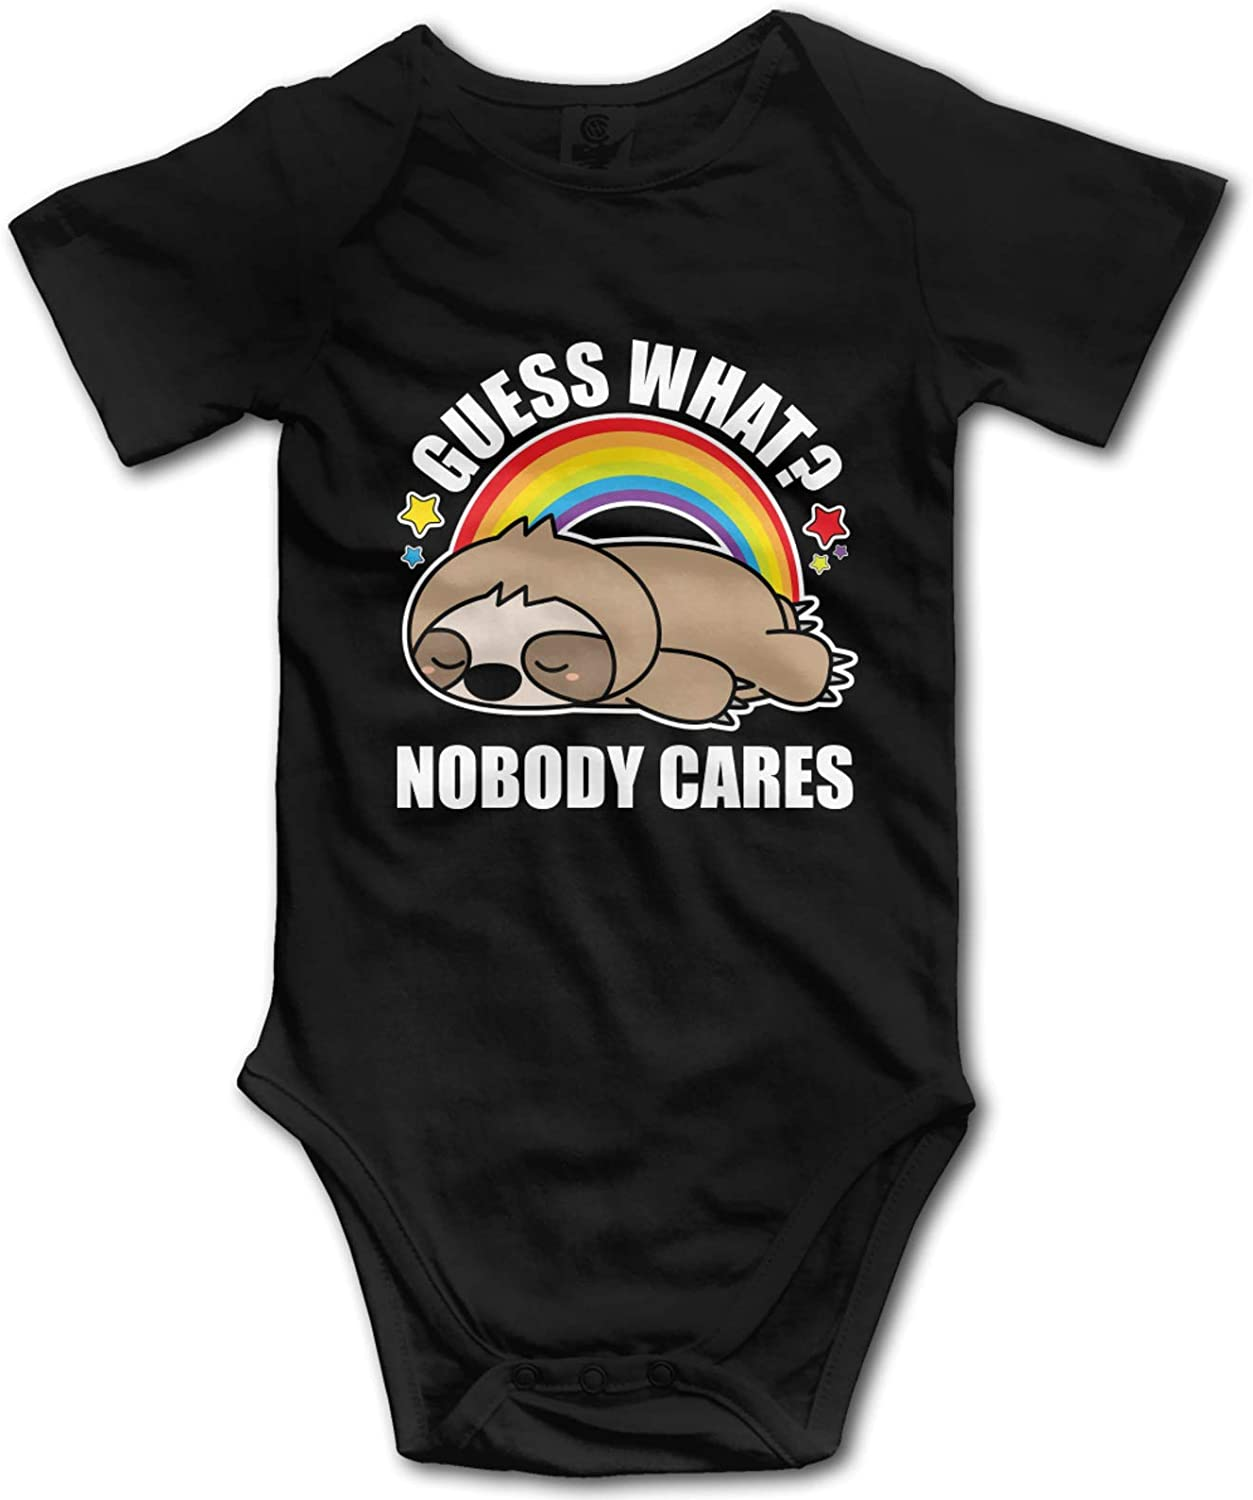 Guess What Nobody Cares Funny Max 87% OFF Onesie Baby It is very popular Short-Sleeve Bod Sloth